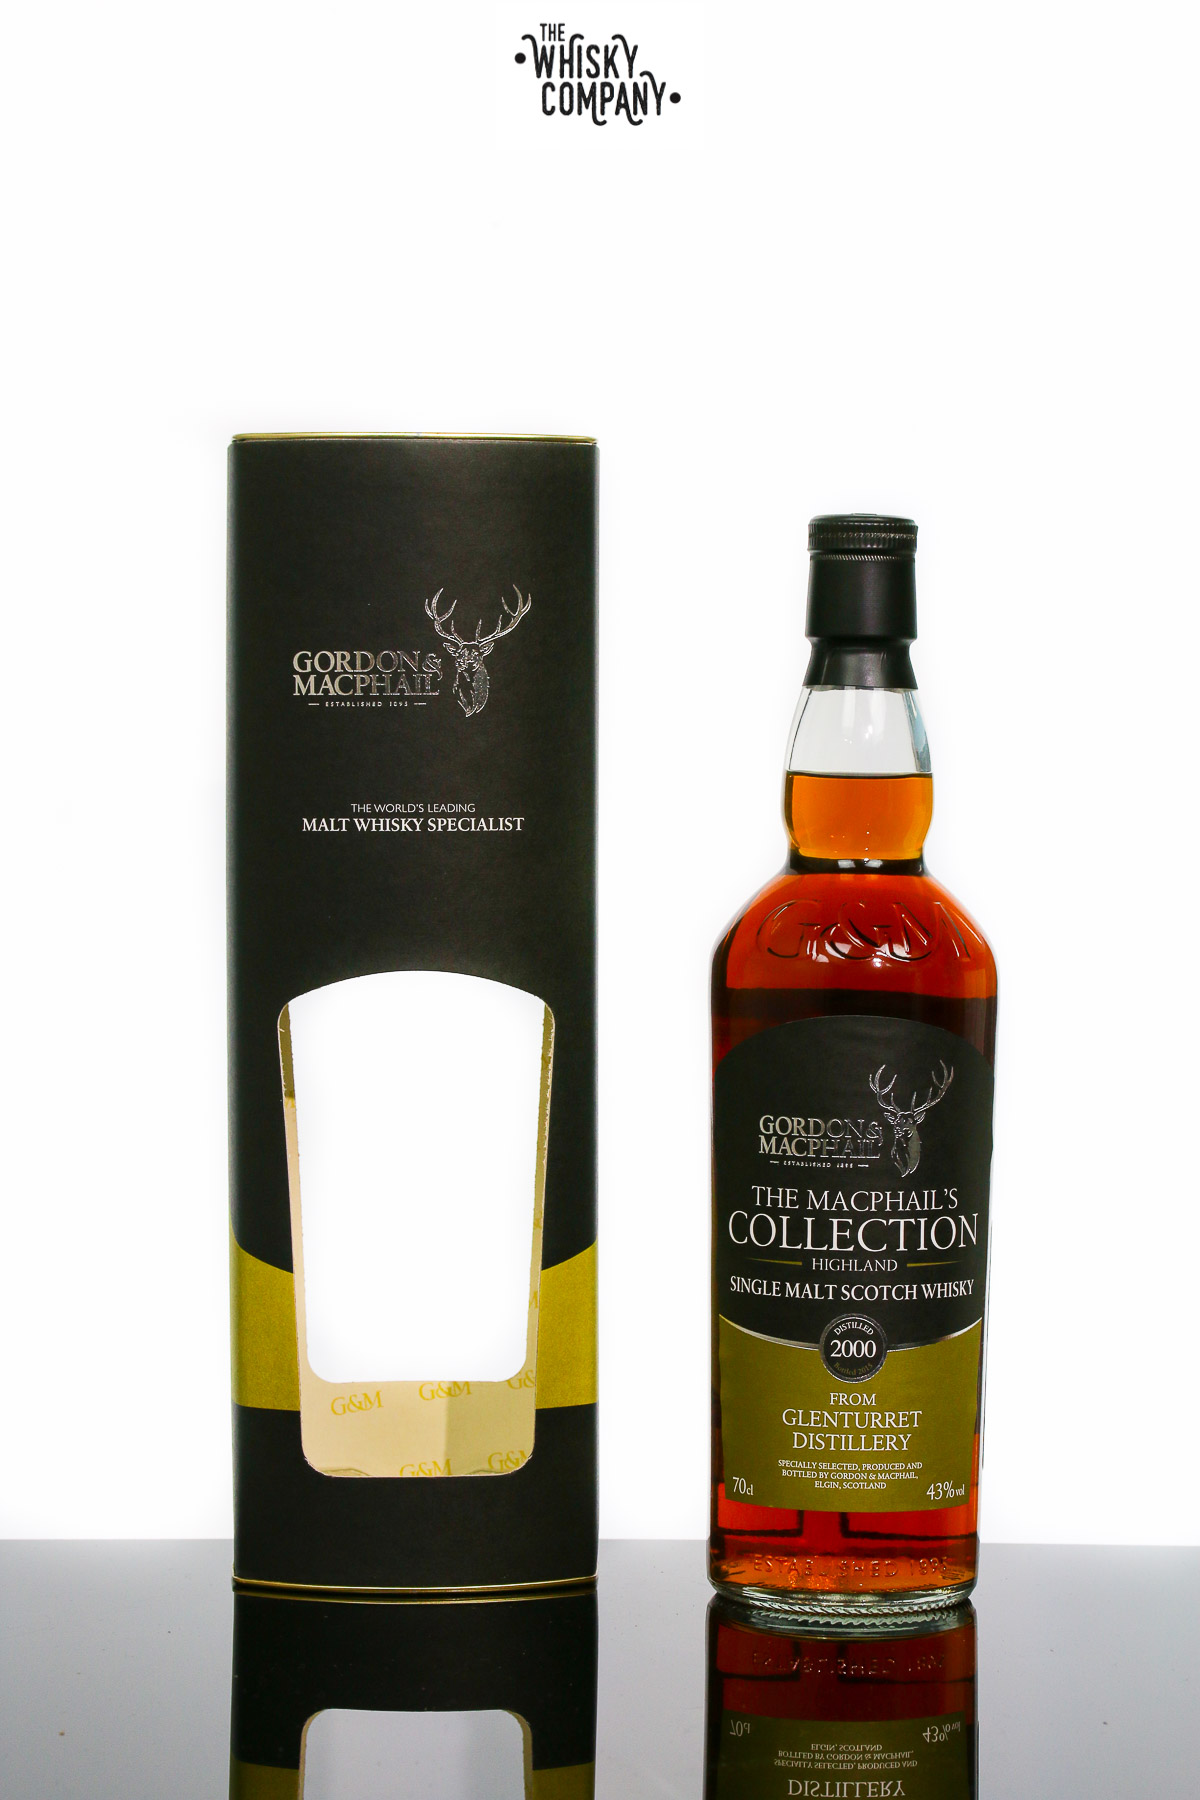 Gordon & MacPhail Glenturret 2000 Highland Single Malt Scotch Whisky